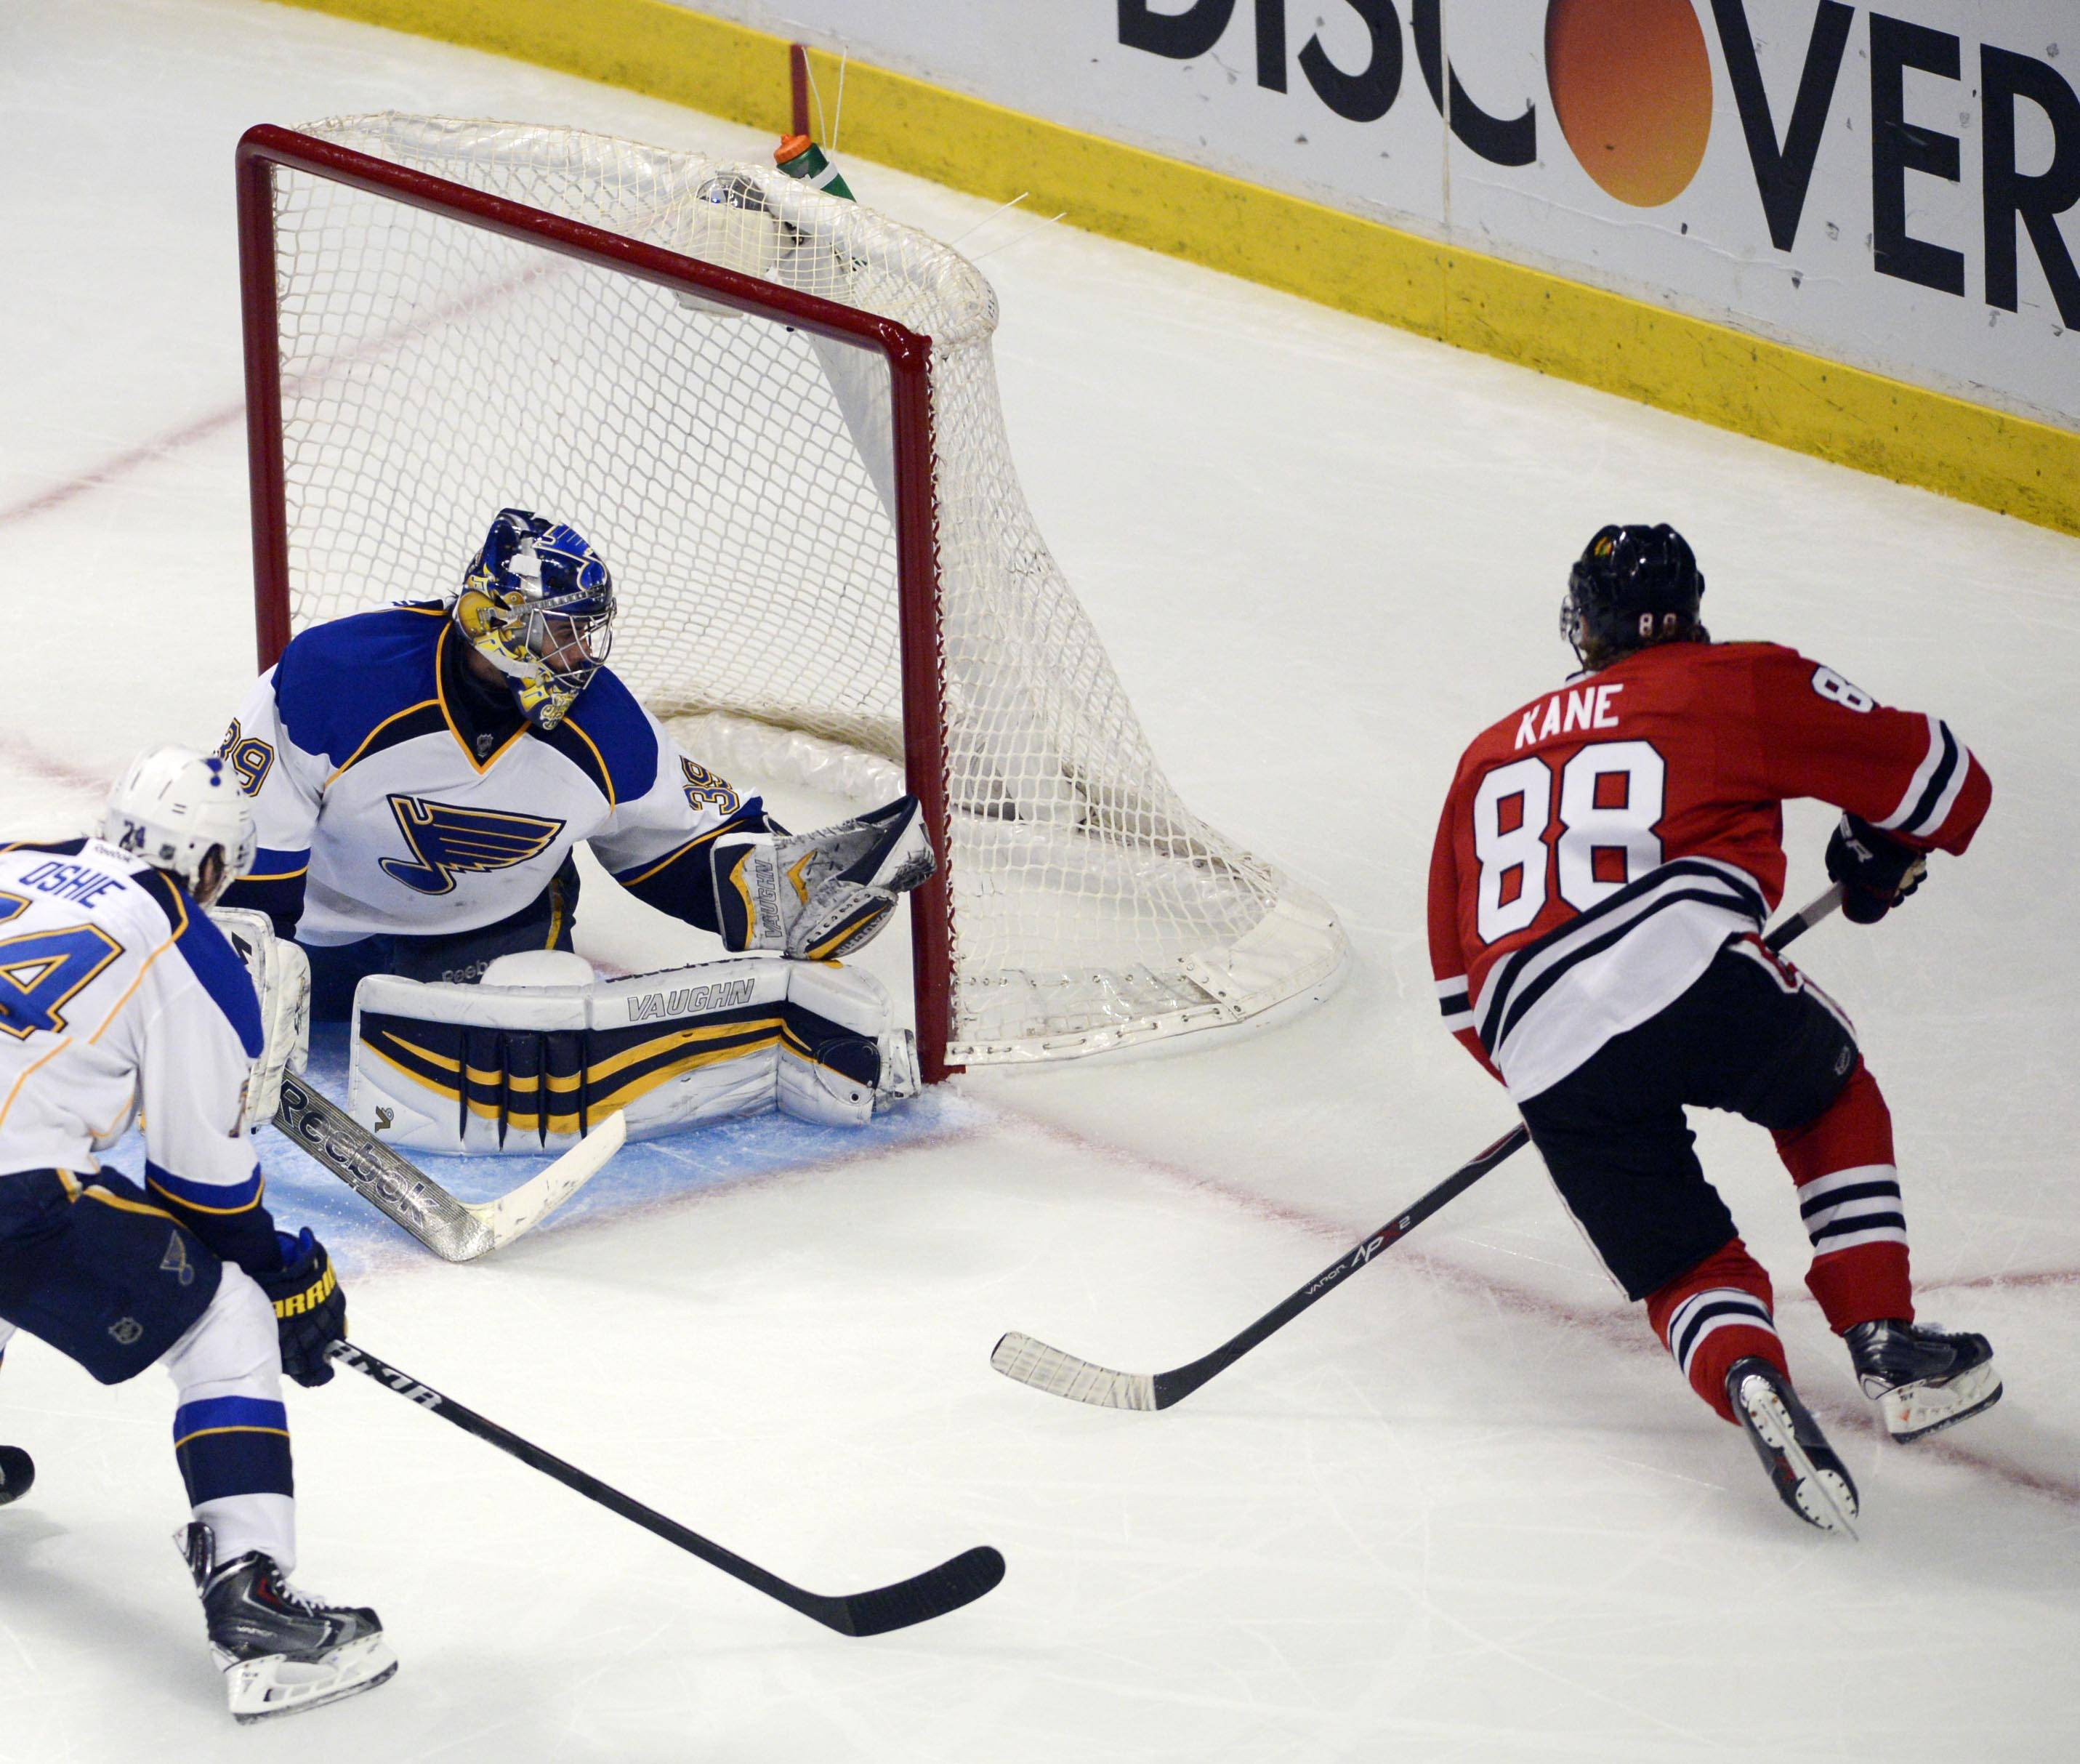 Chicago Blackhawks right wing Patrick Kane scores the second goal of the second period as the puck goes behind St. Louis Blues goalie Ryan Miller.